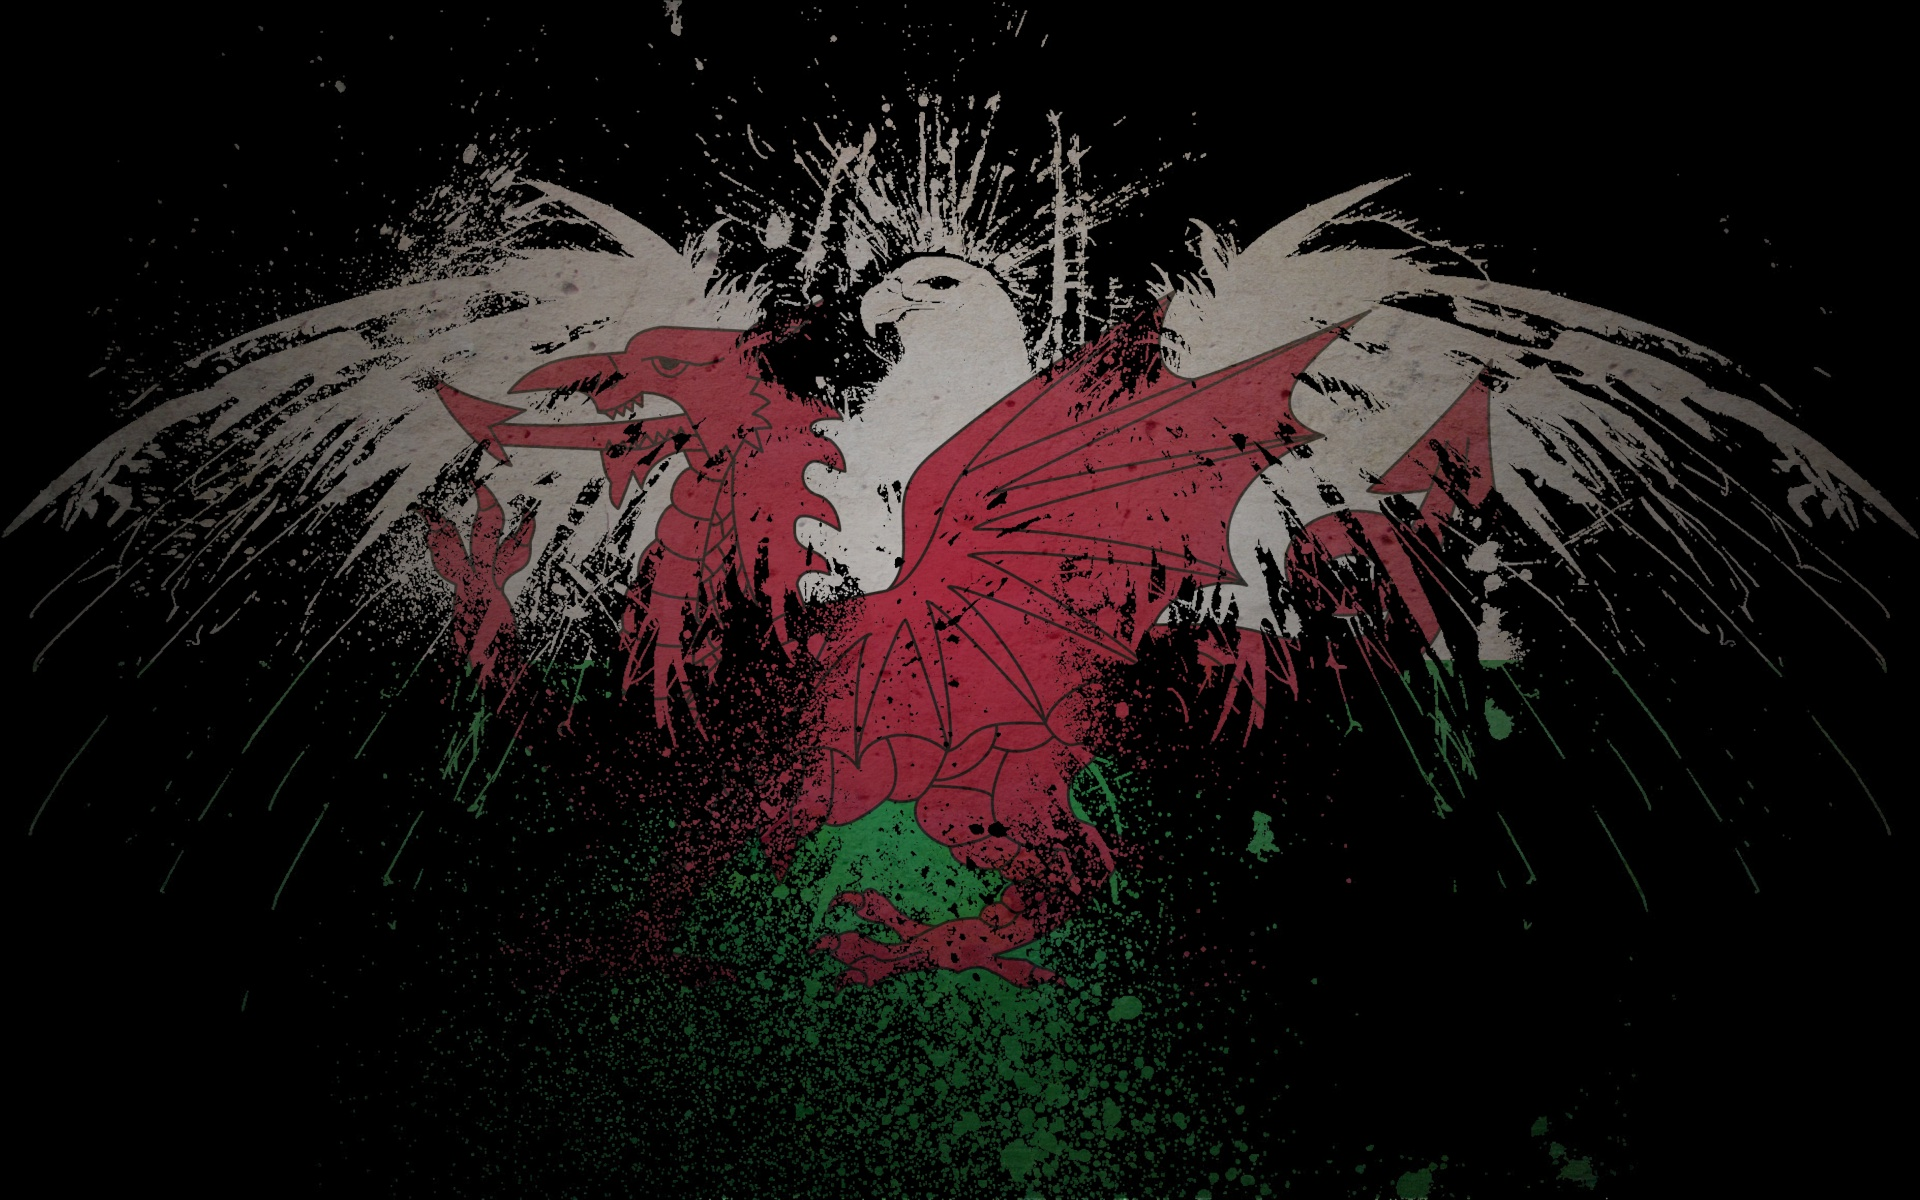 welsh flag wallpaper wallpapers hd for on pinterest welsh flag 1920x1200